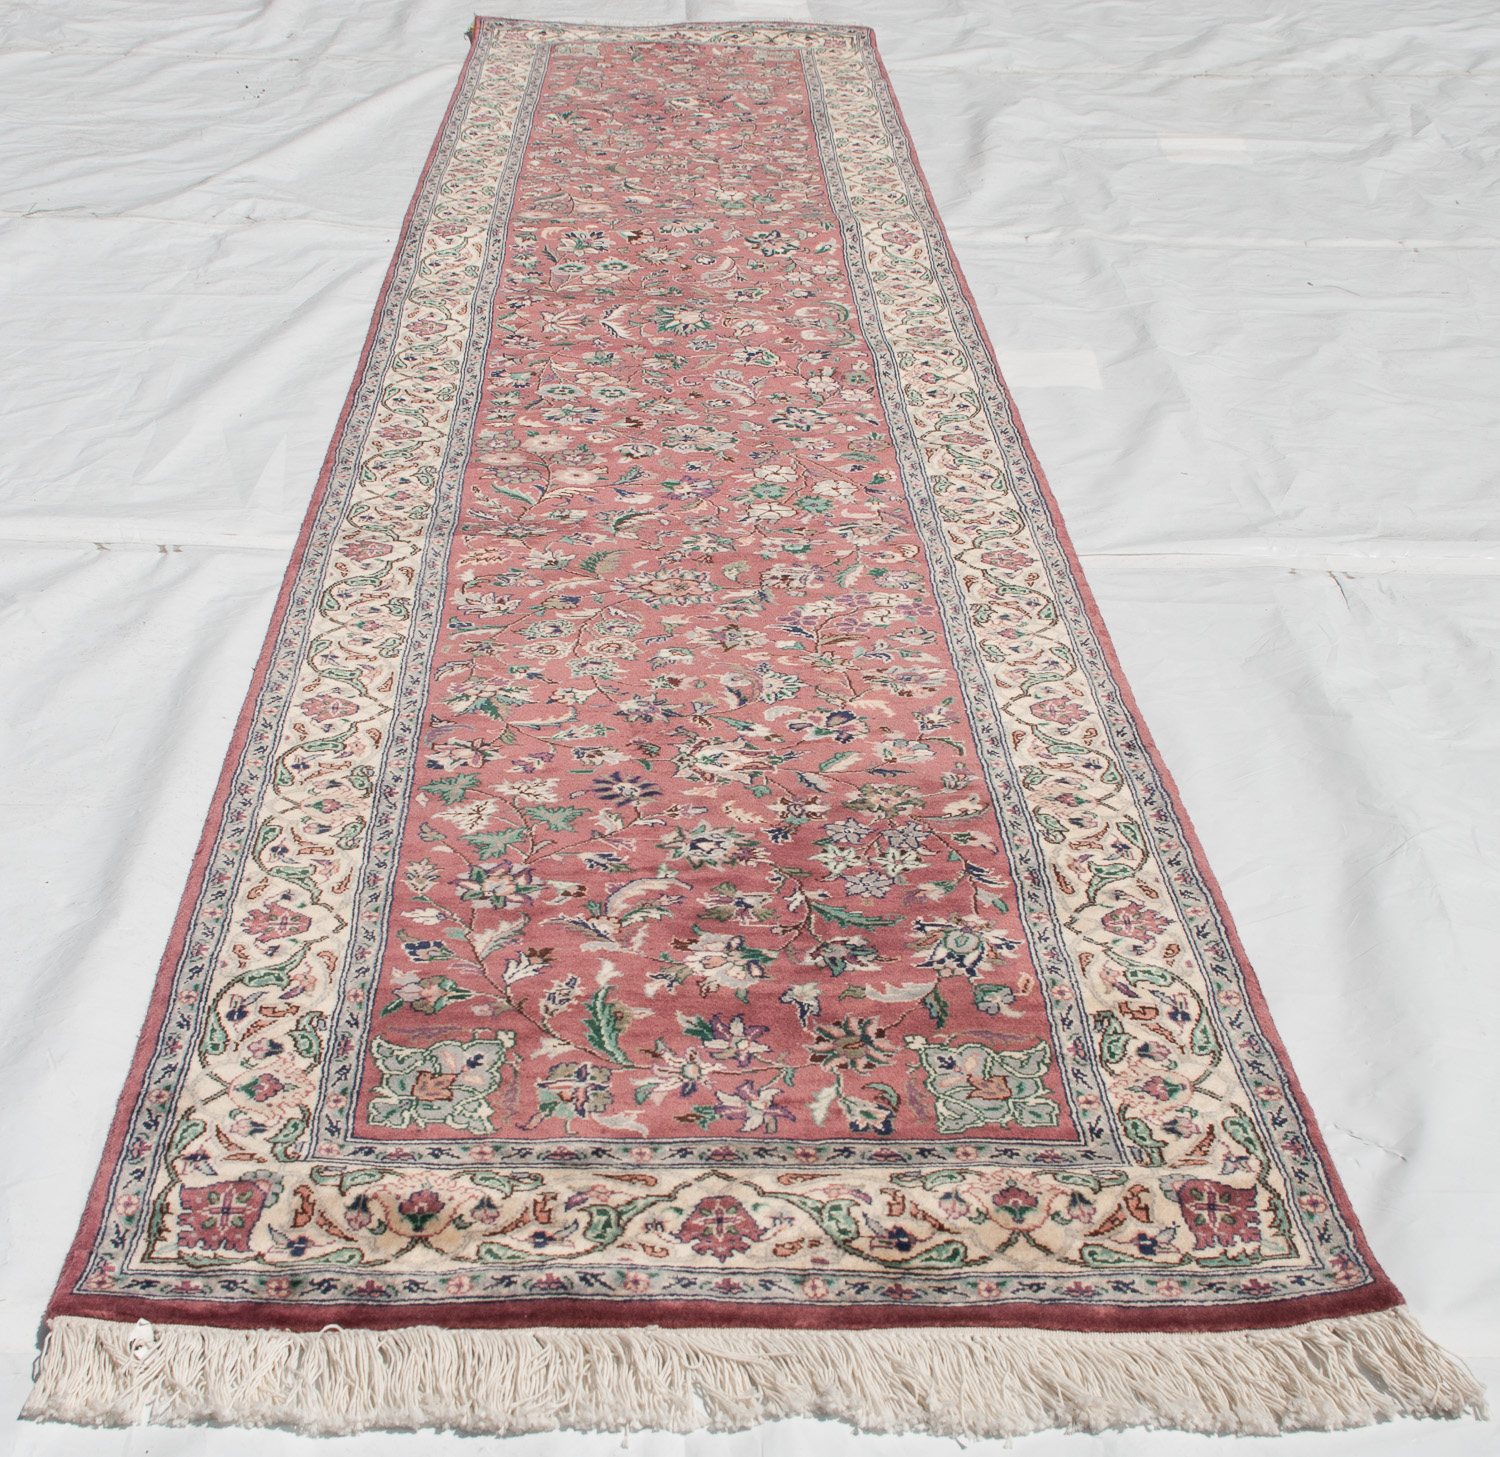 RRA 2x13 Carpet Runner Pak Persian Isfahan Design Rose